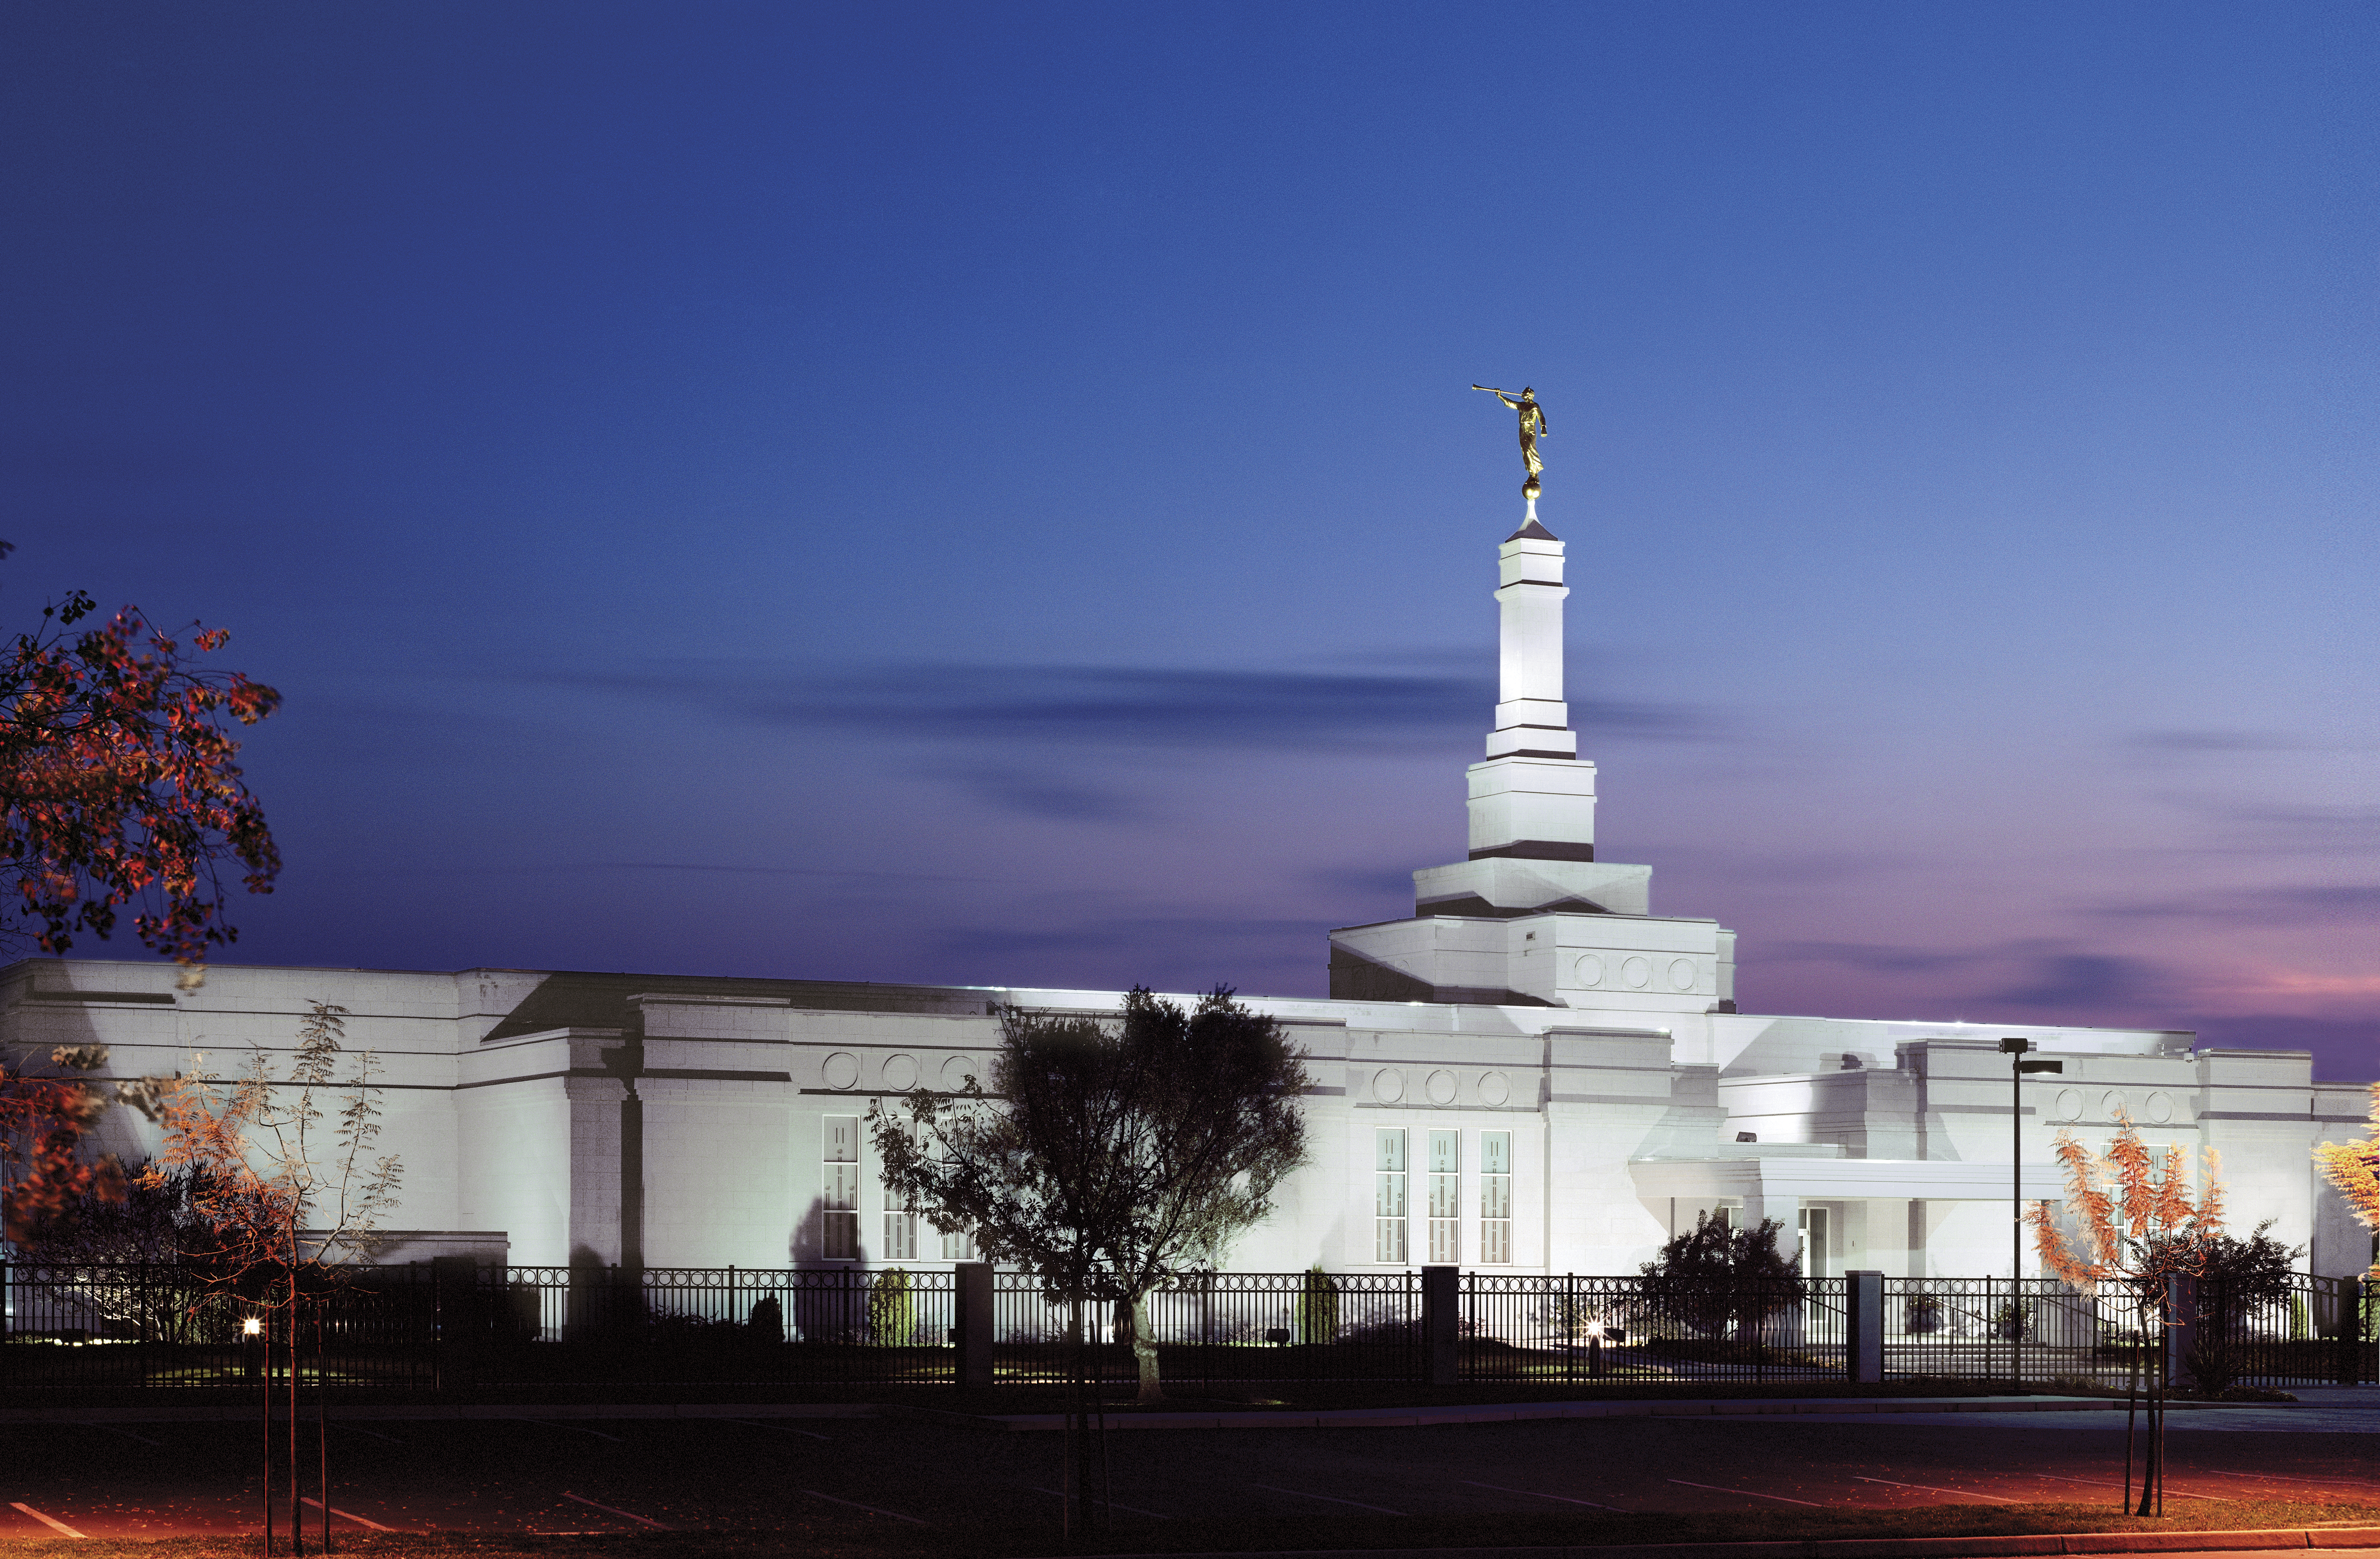 The Fresno California Temple lit up at night.